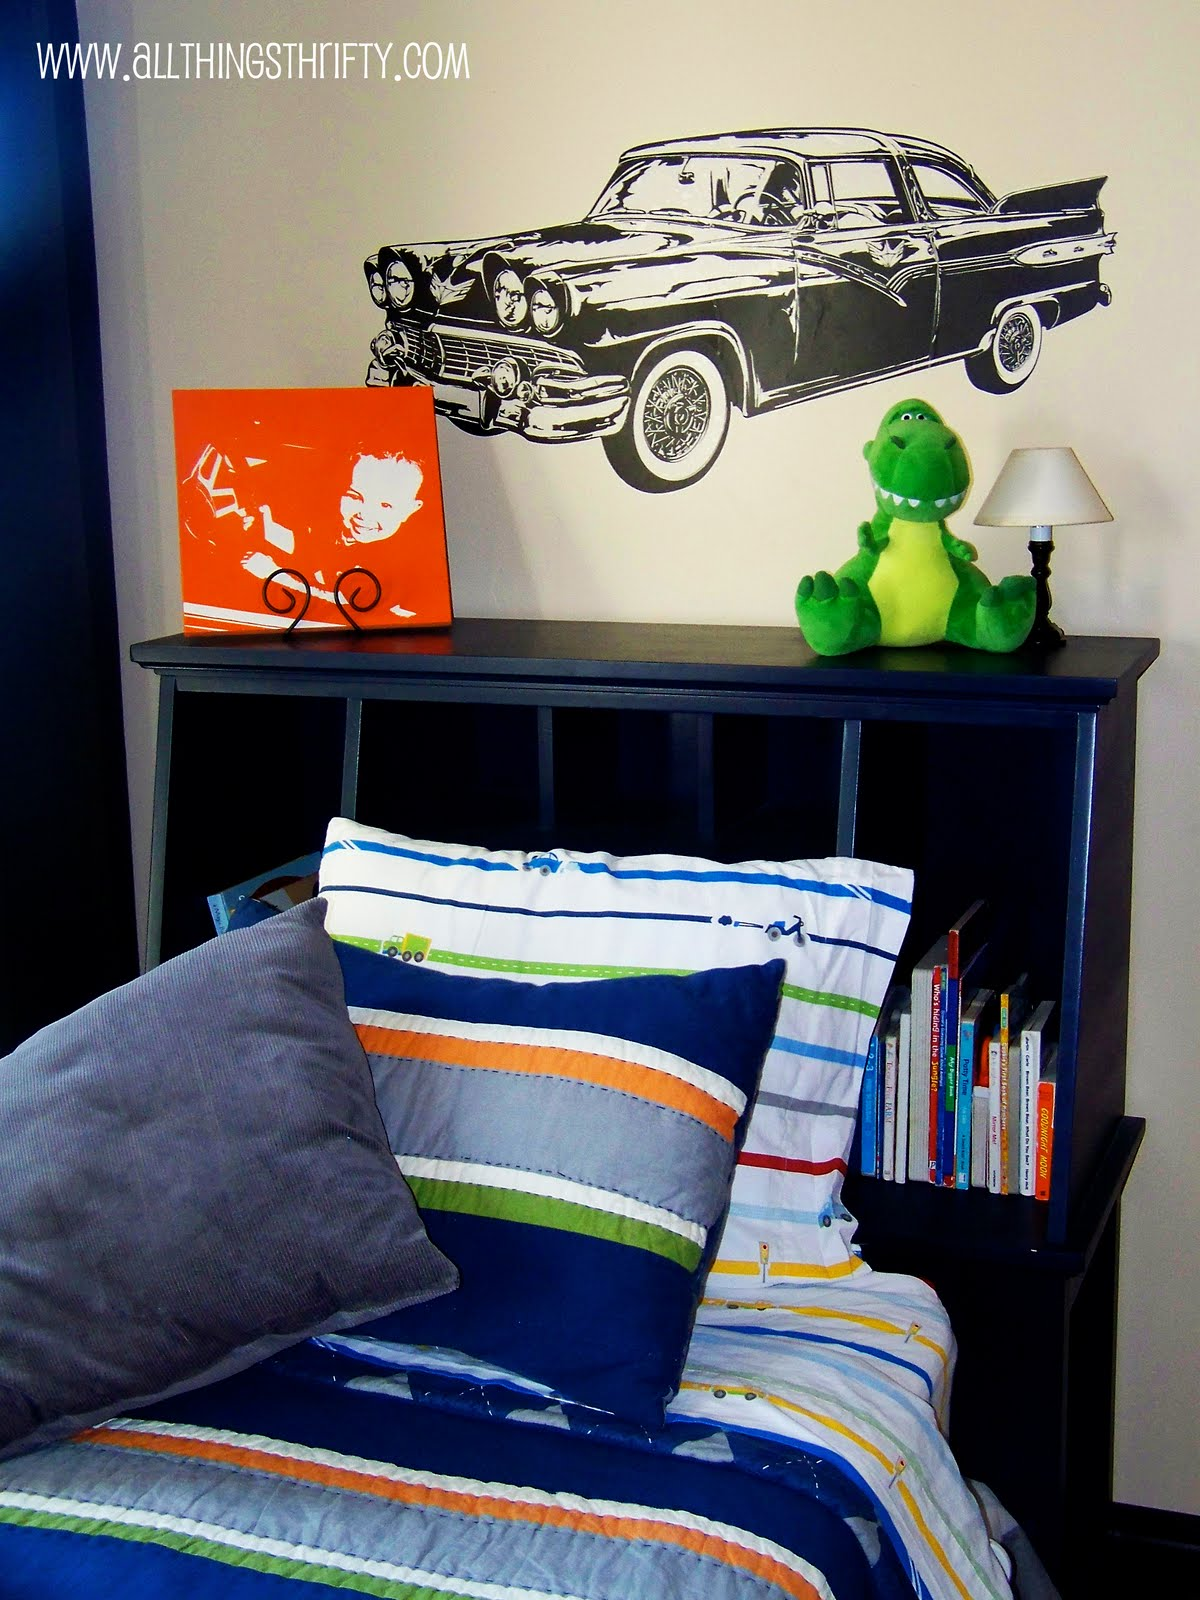 Best Little Boy's Room Bedroom Decor This Month